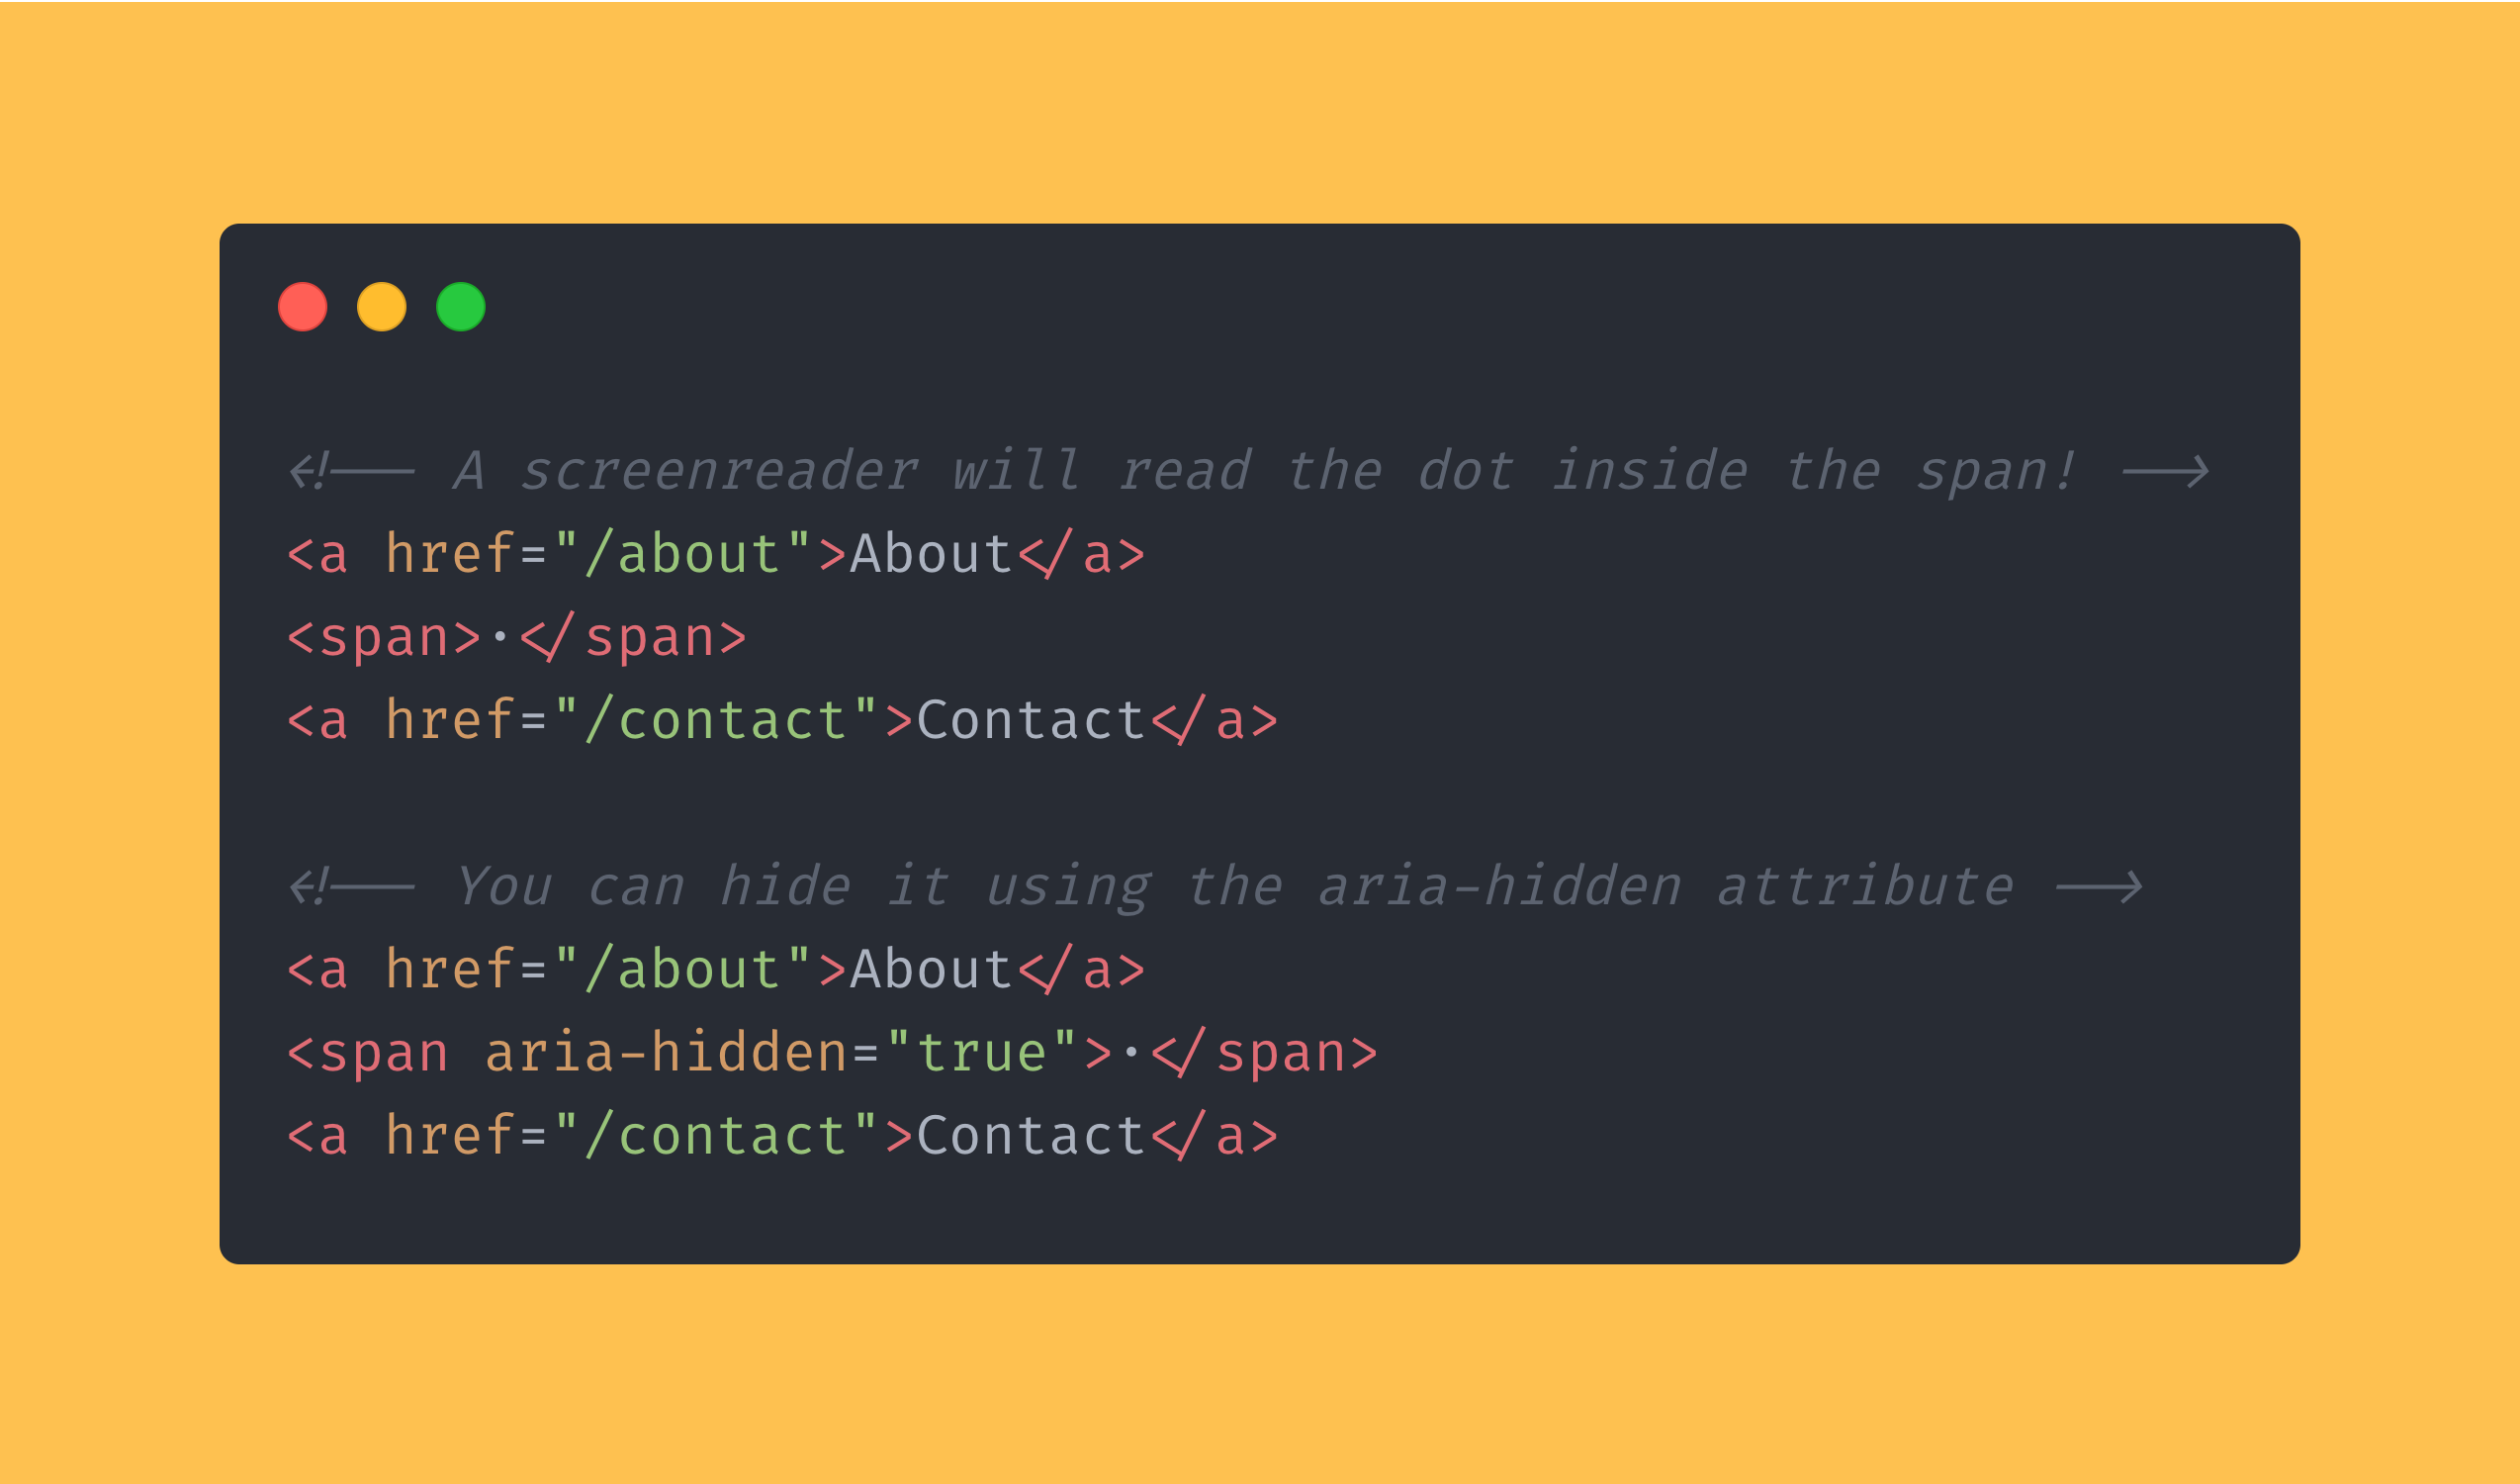 HTML code block showing how you can use the aria-hidden attribute to hide items from a screenreader.